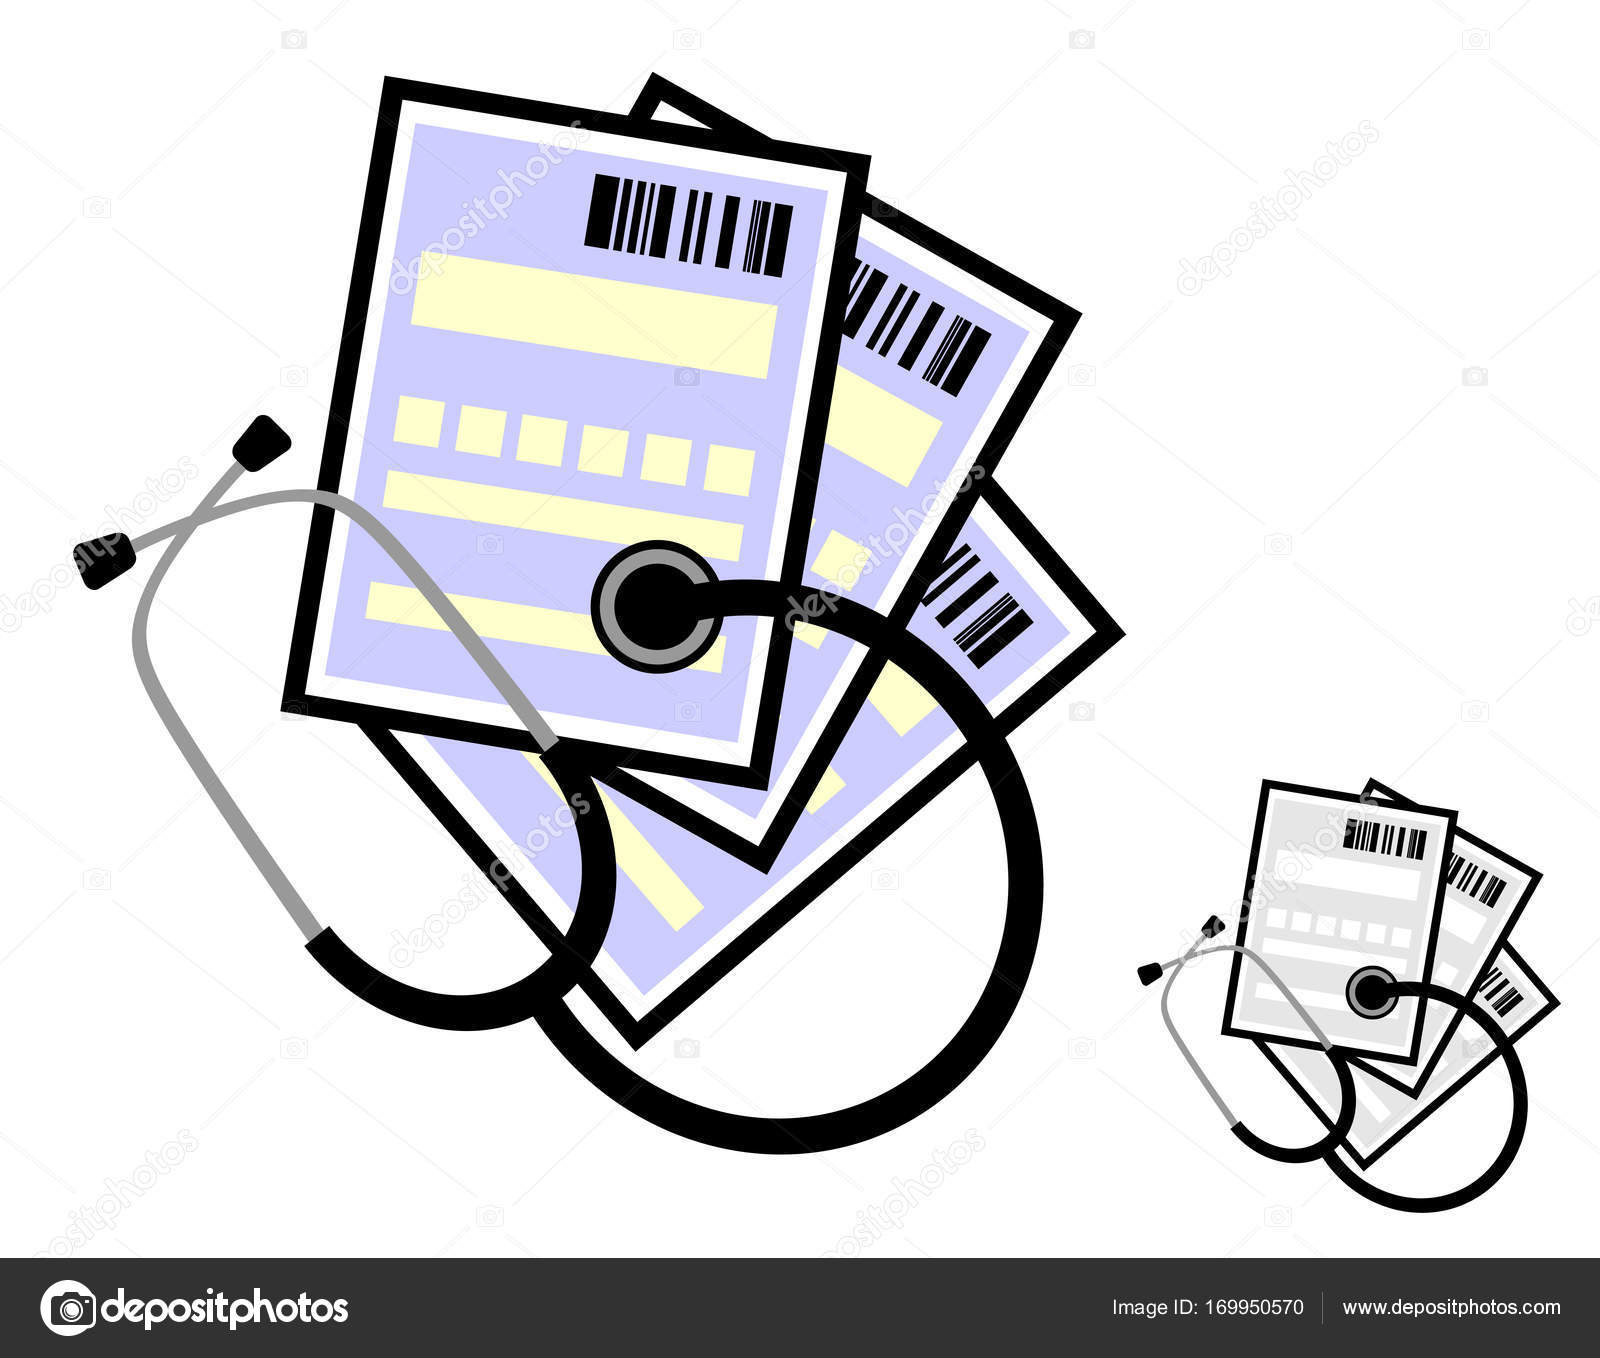 A Stethoscope And Medical Certificates Or Prescriptions To Buy